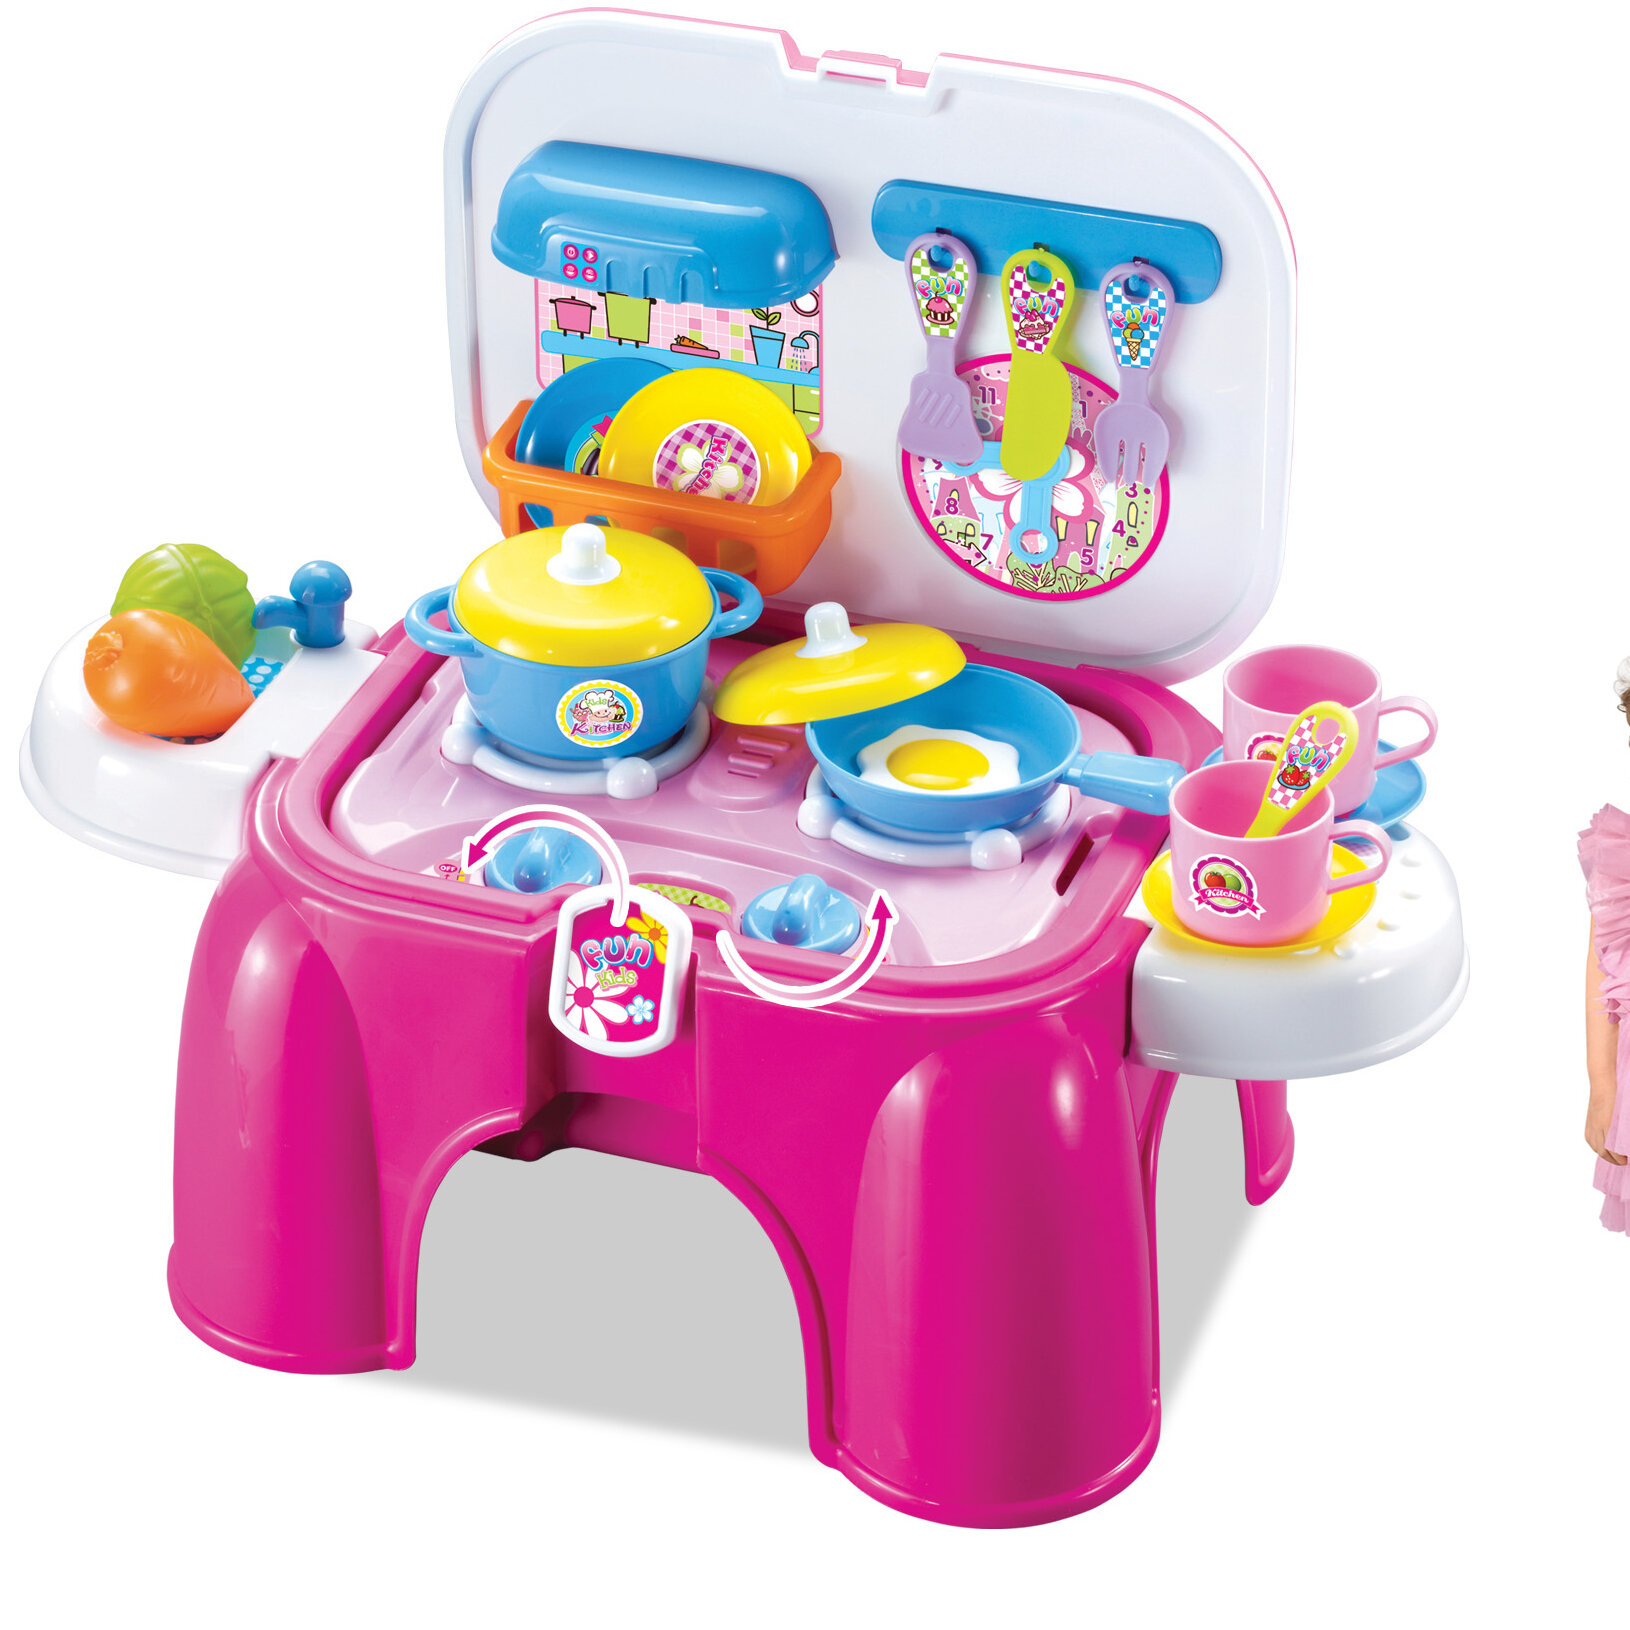 Berry Toys My First Portable Play and Carry Kitchen Bench Play Set